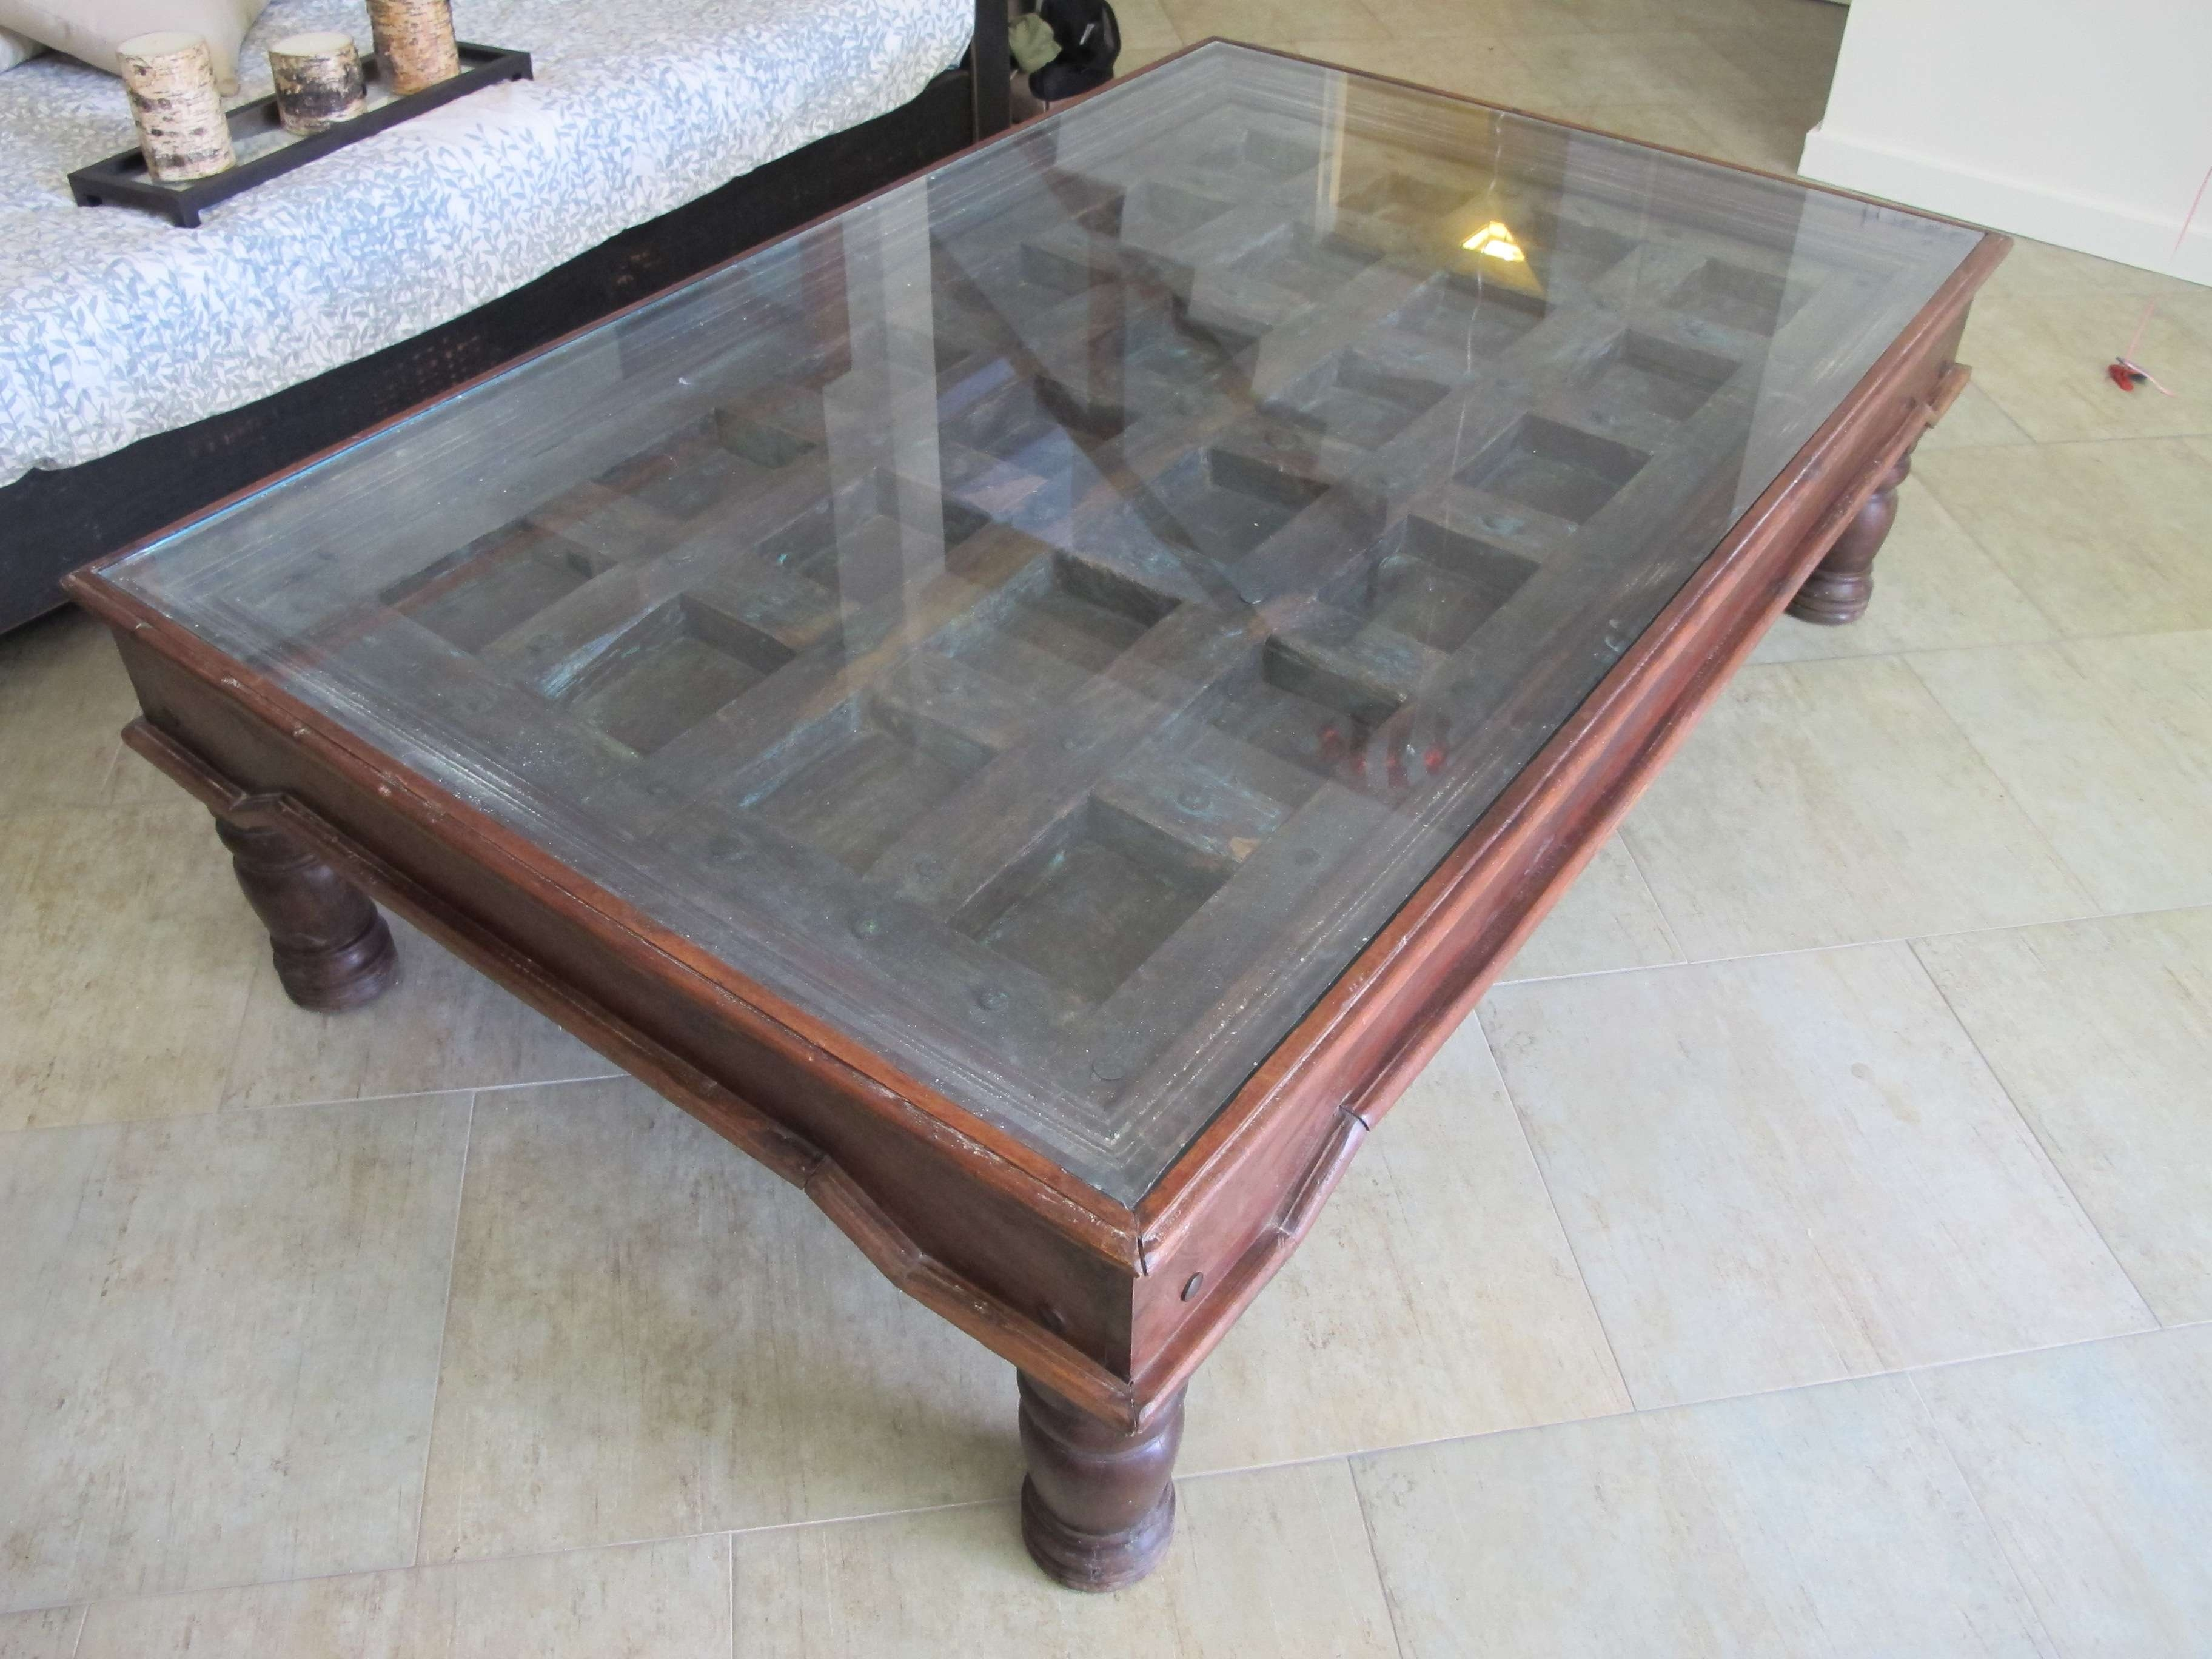 2018 Indian Coffee Tables In Coffee Table Made From And Old Indian Door (View 18 of 20)